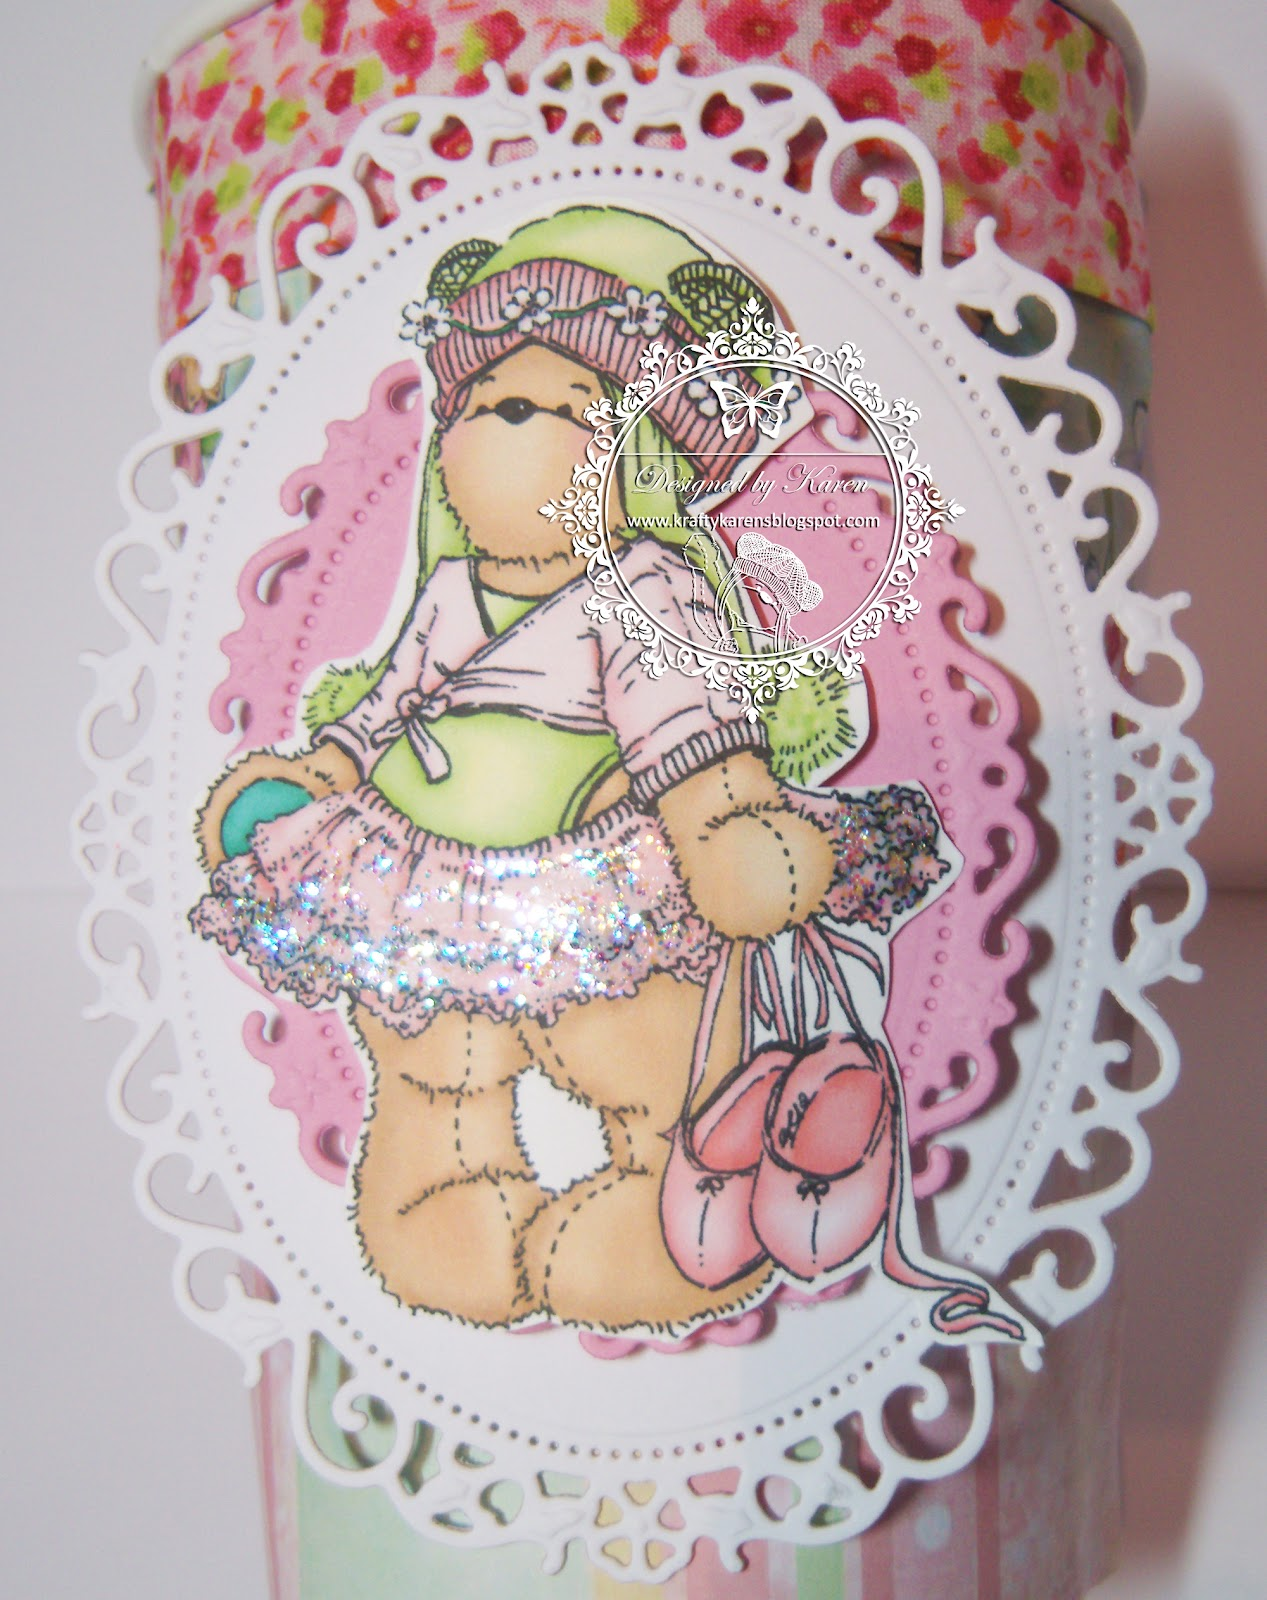 Ribbon Work Designs http://teddybochallenge.blogspot.com/2012/09/fairy-tale-friday_28.html